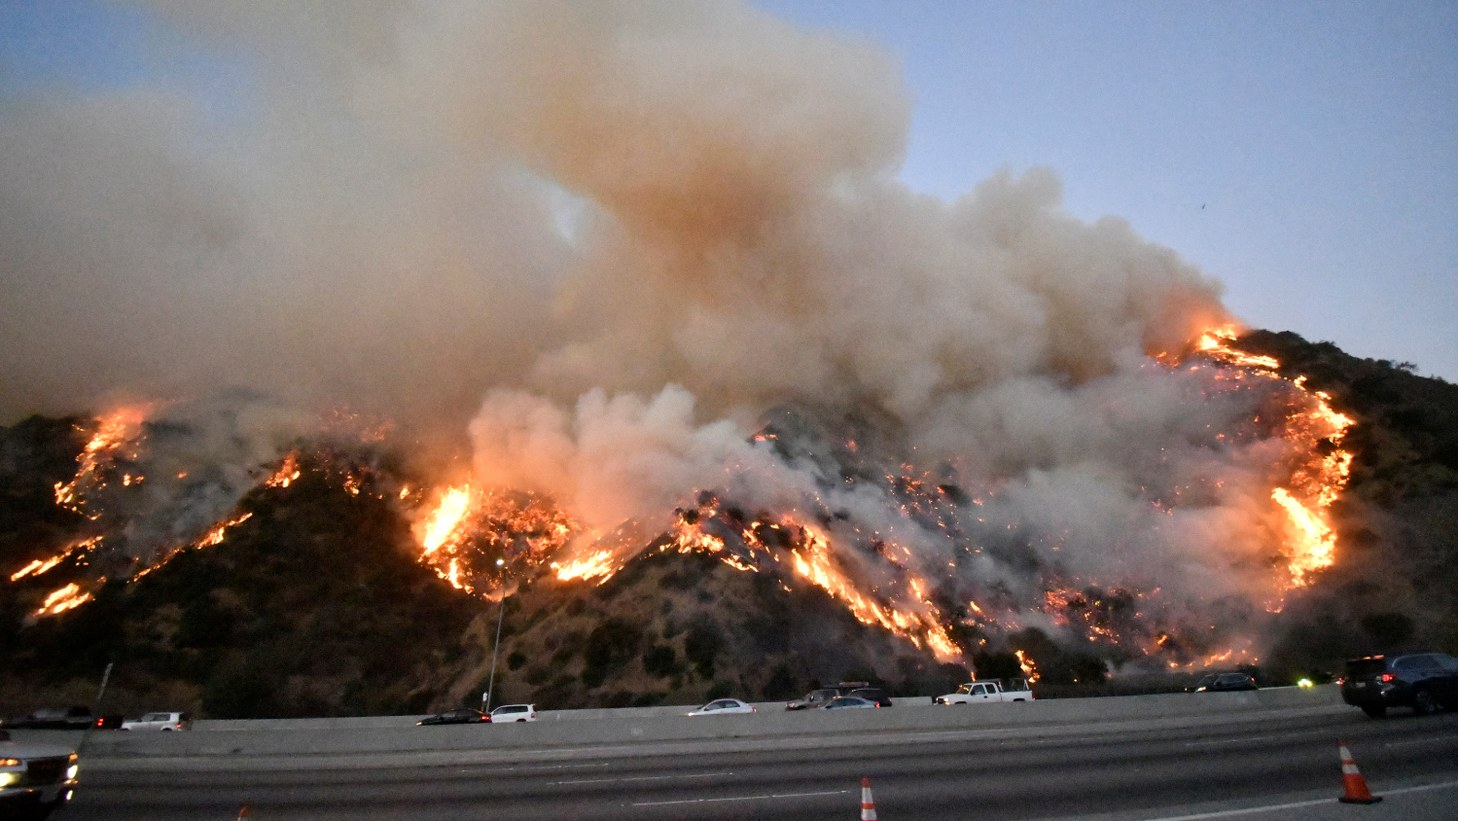 The Getty Fire burns near the Getty Center along the 405 freeway north of Los Angeles, California, U.S. October 28, 2019.